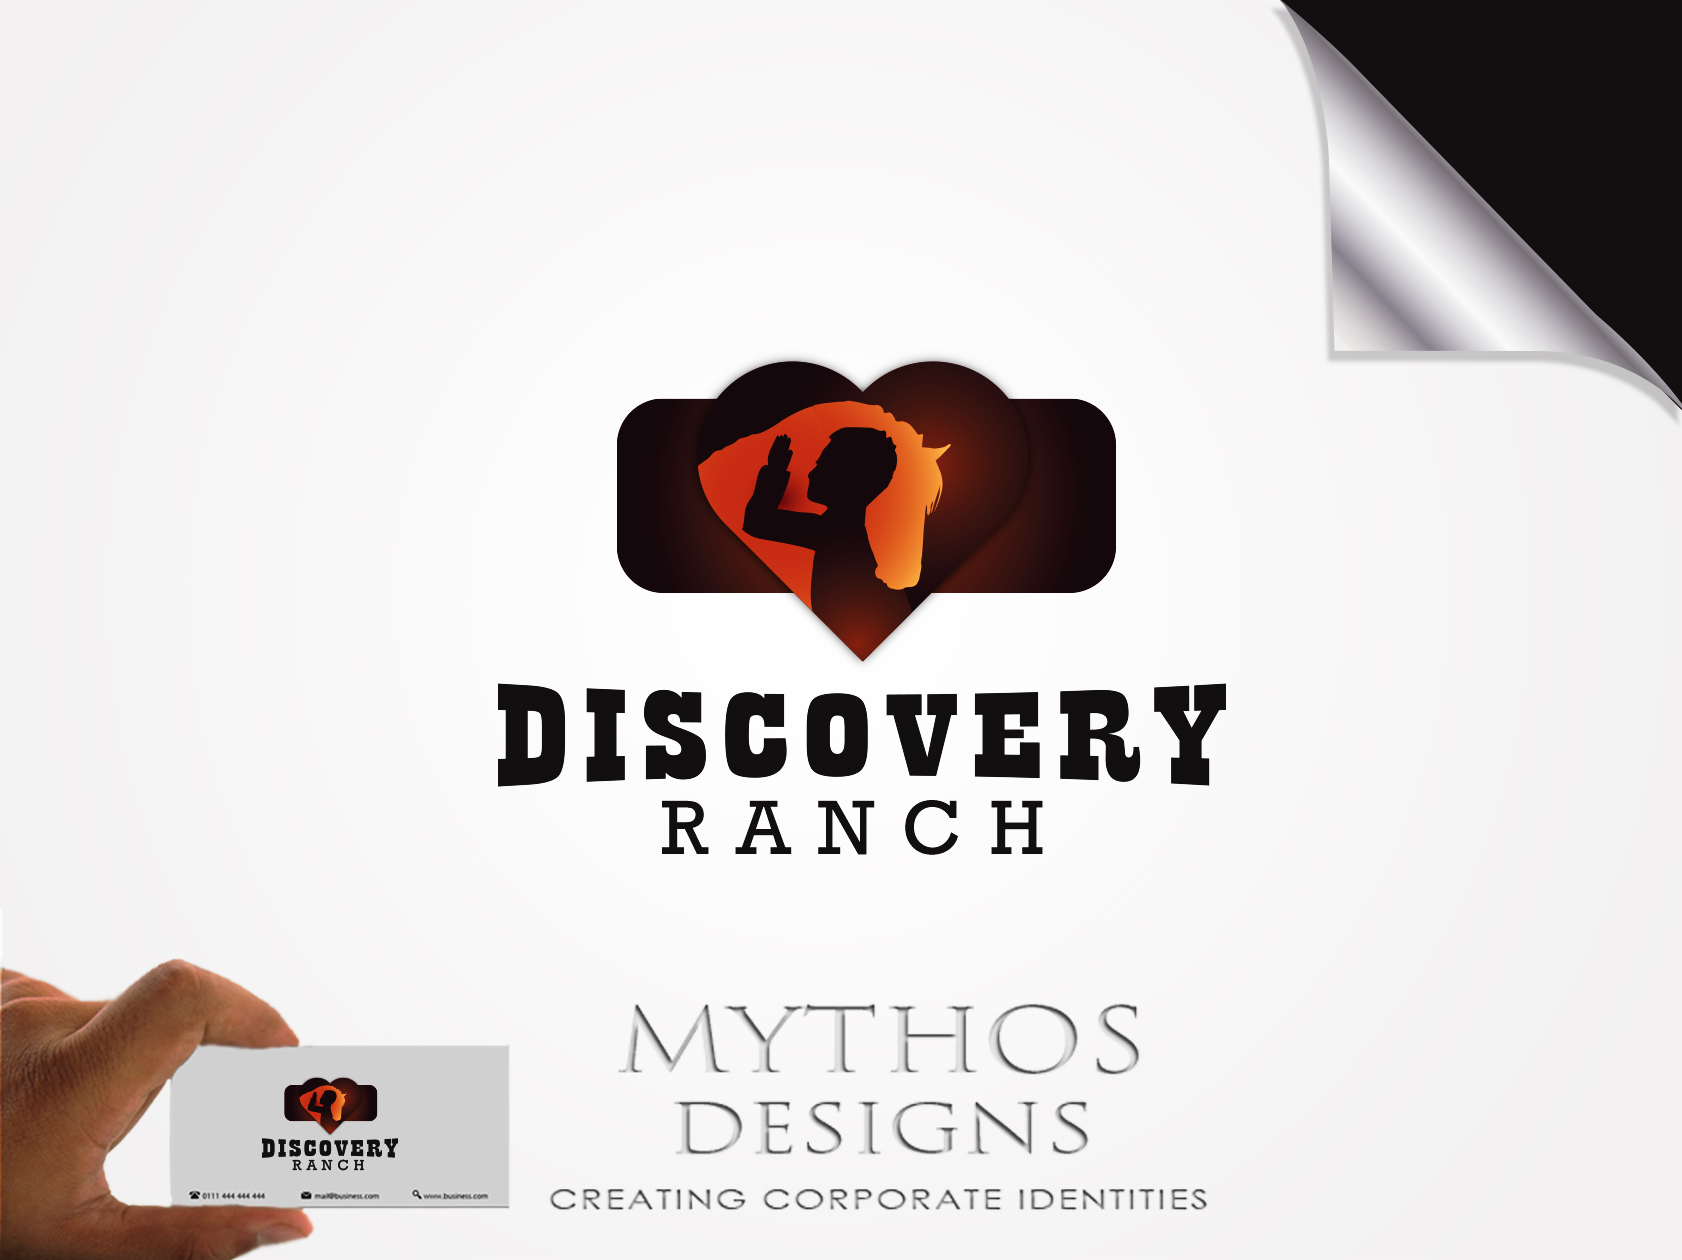 Logo Design by Mythos Designs - Entry No. 95 in the Logo Design Contest Creative Logo Design for Discovery Ranch.